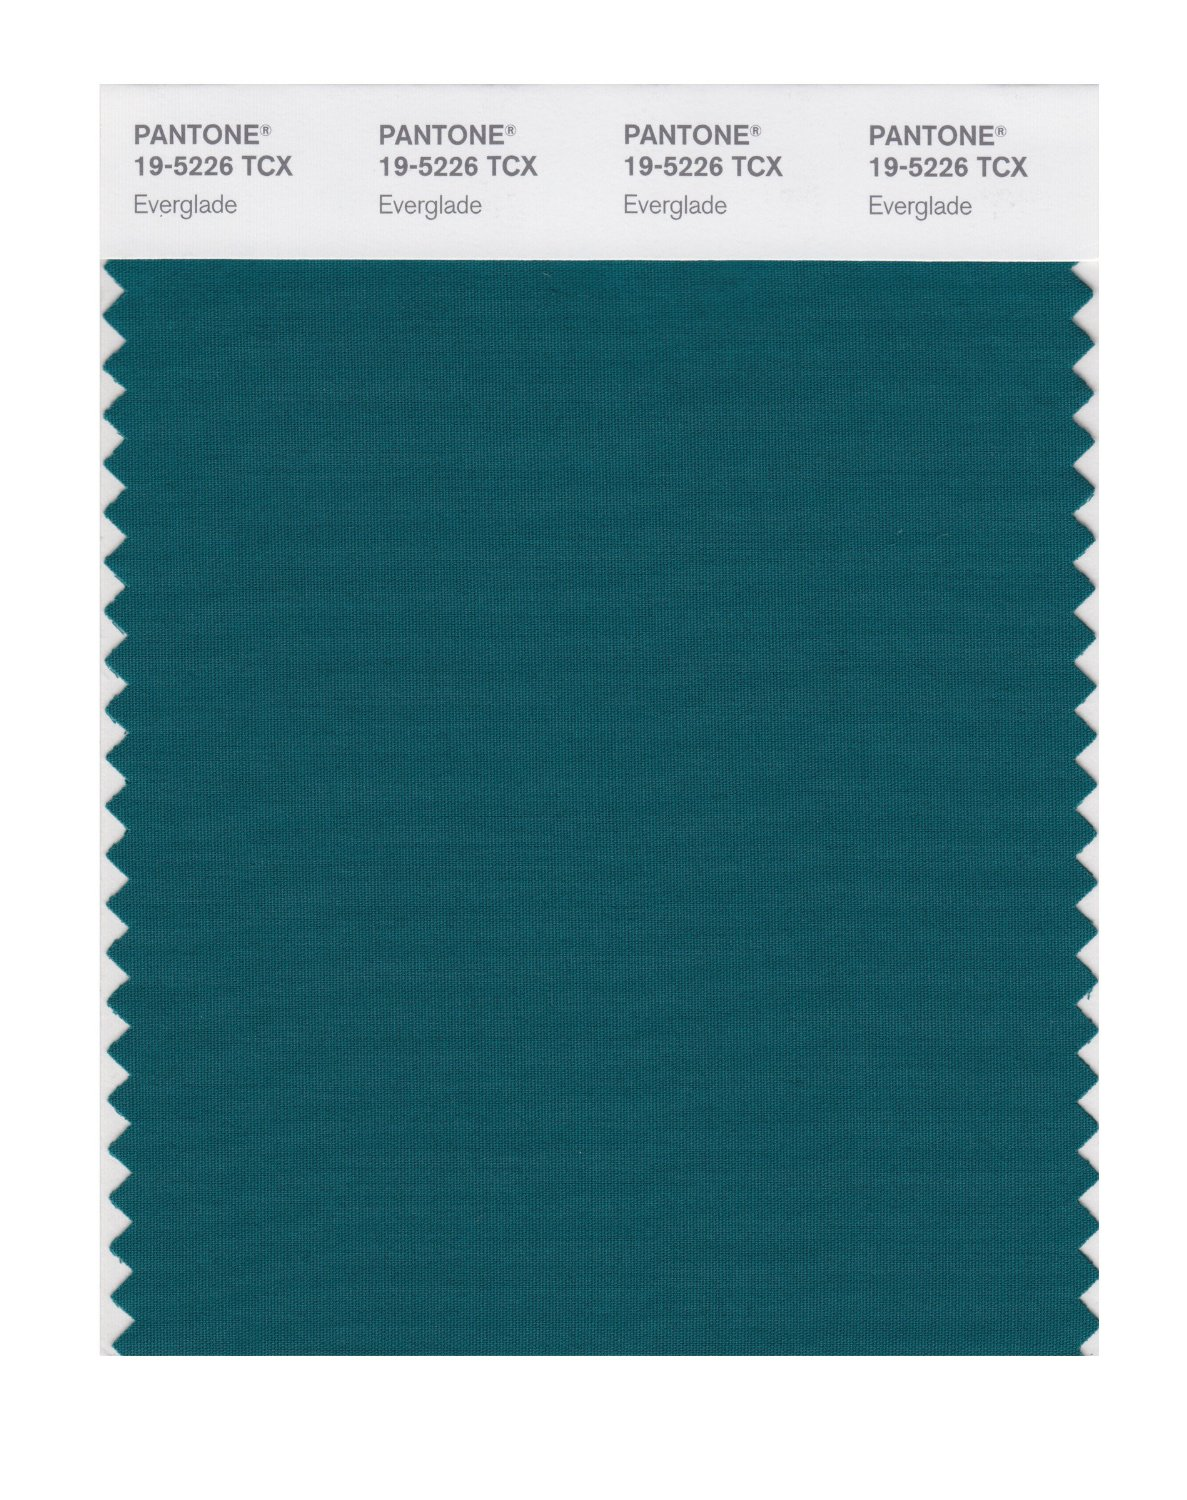 Pantone Smart Swatch 19-5226 Everglade